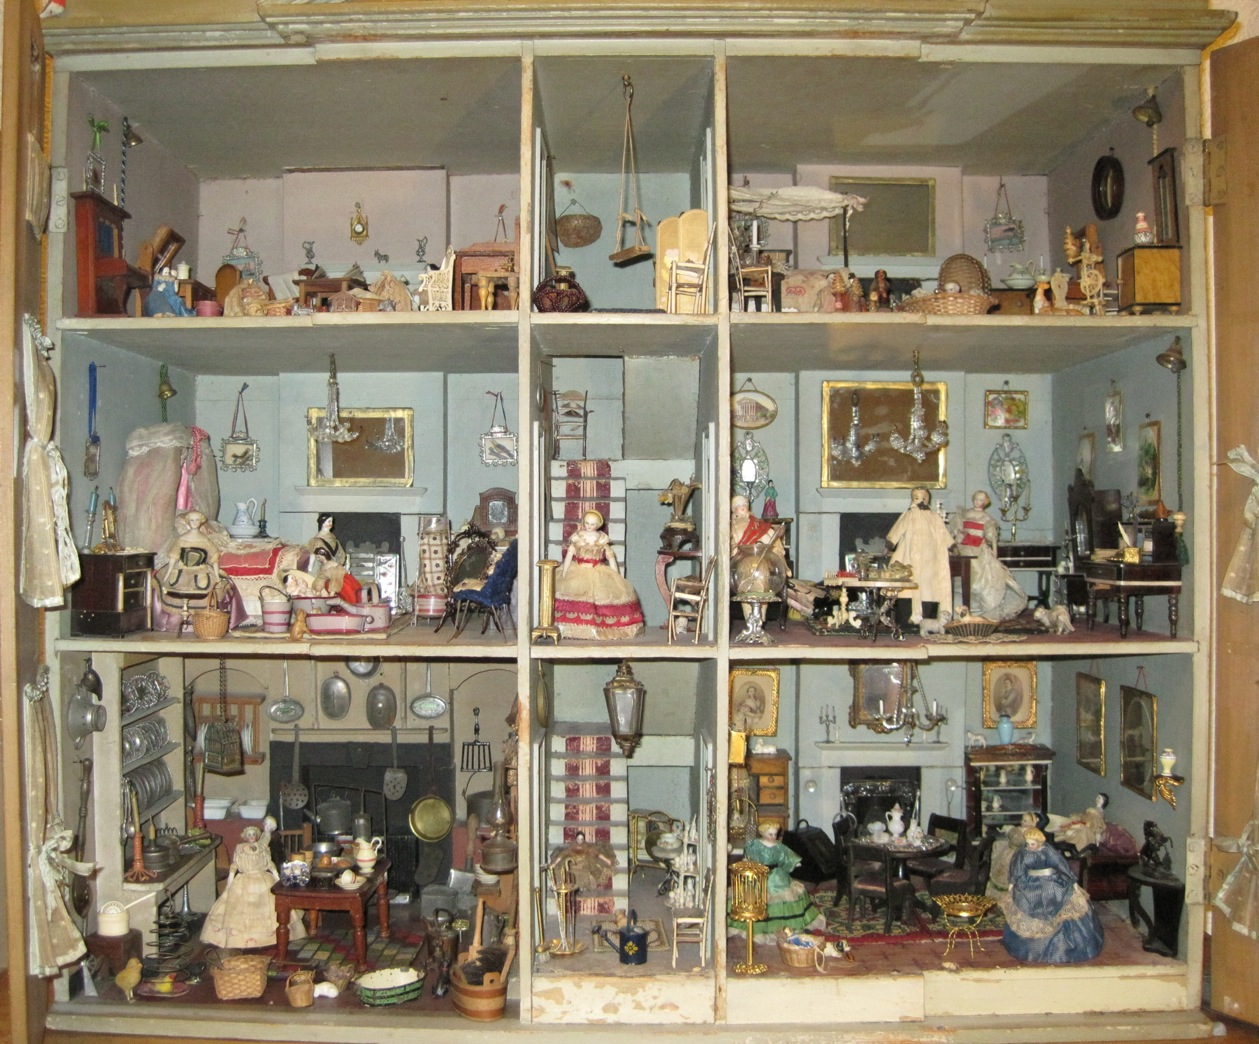 Nov - Angela Bulteel - Dolls\' Houses Past & Present